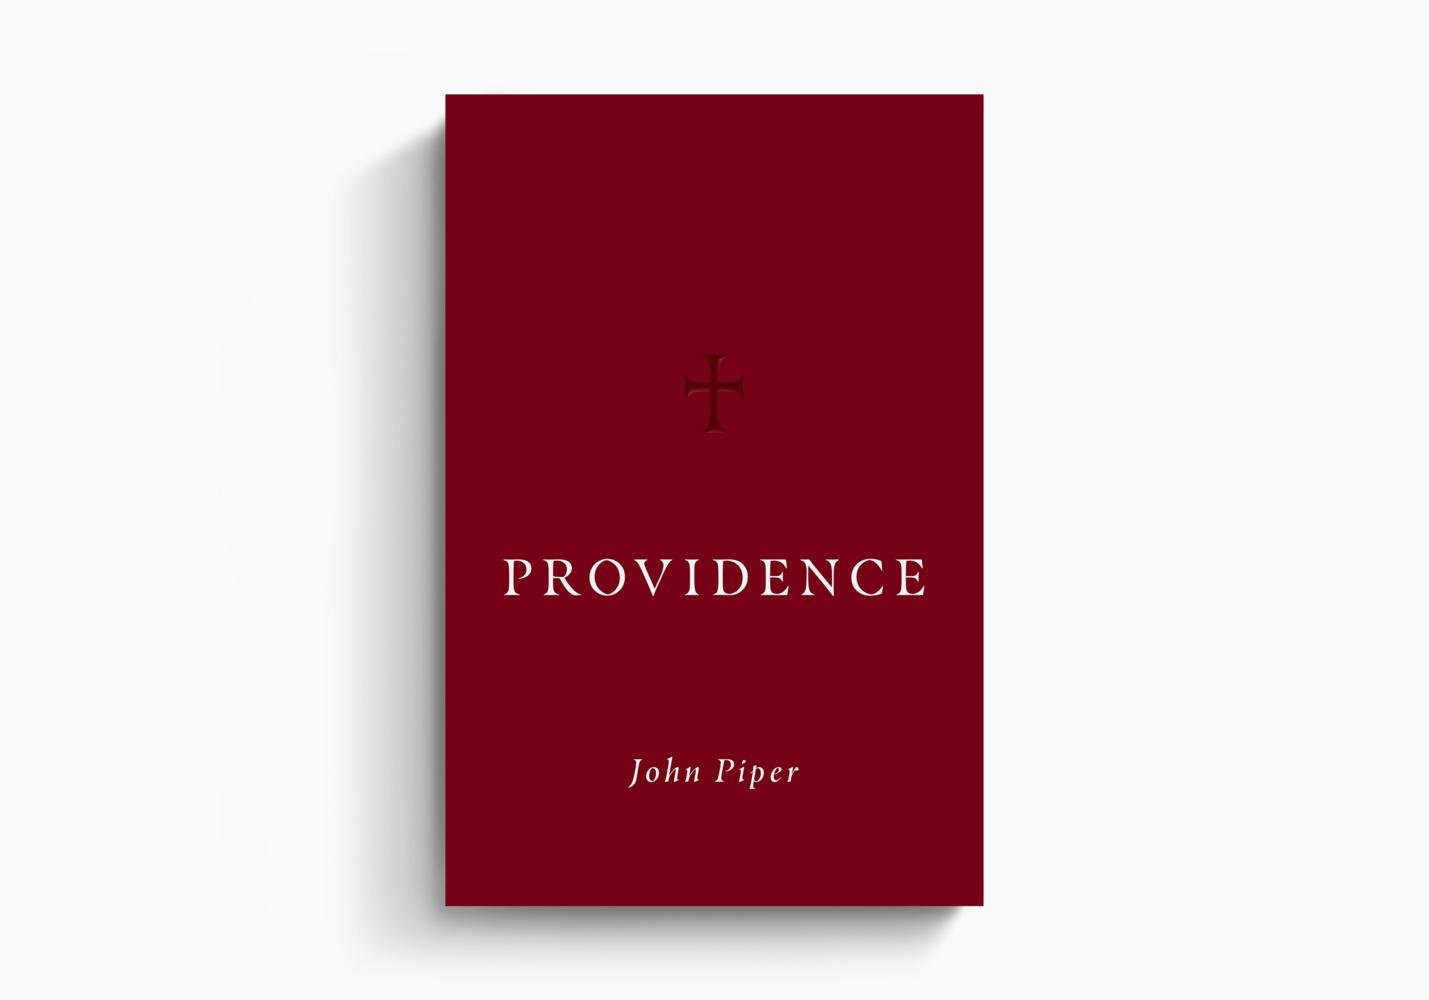 Review of Providence by John Piper